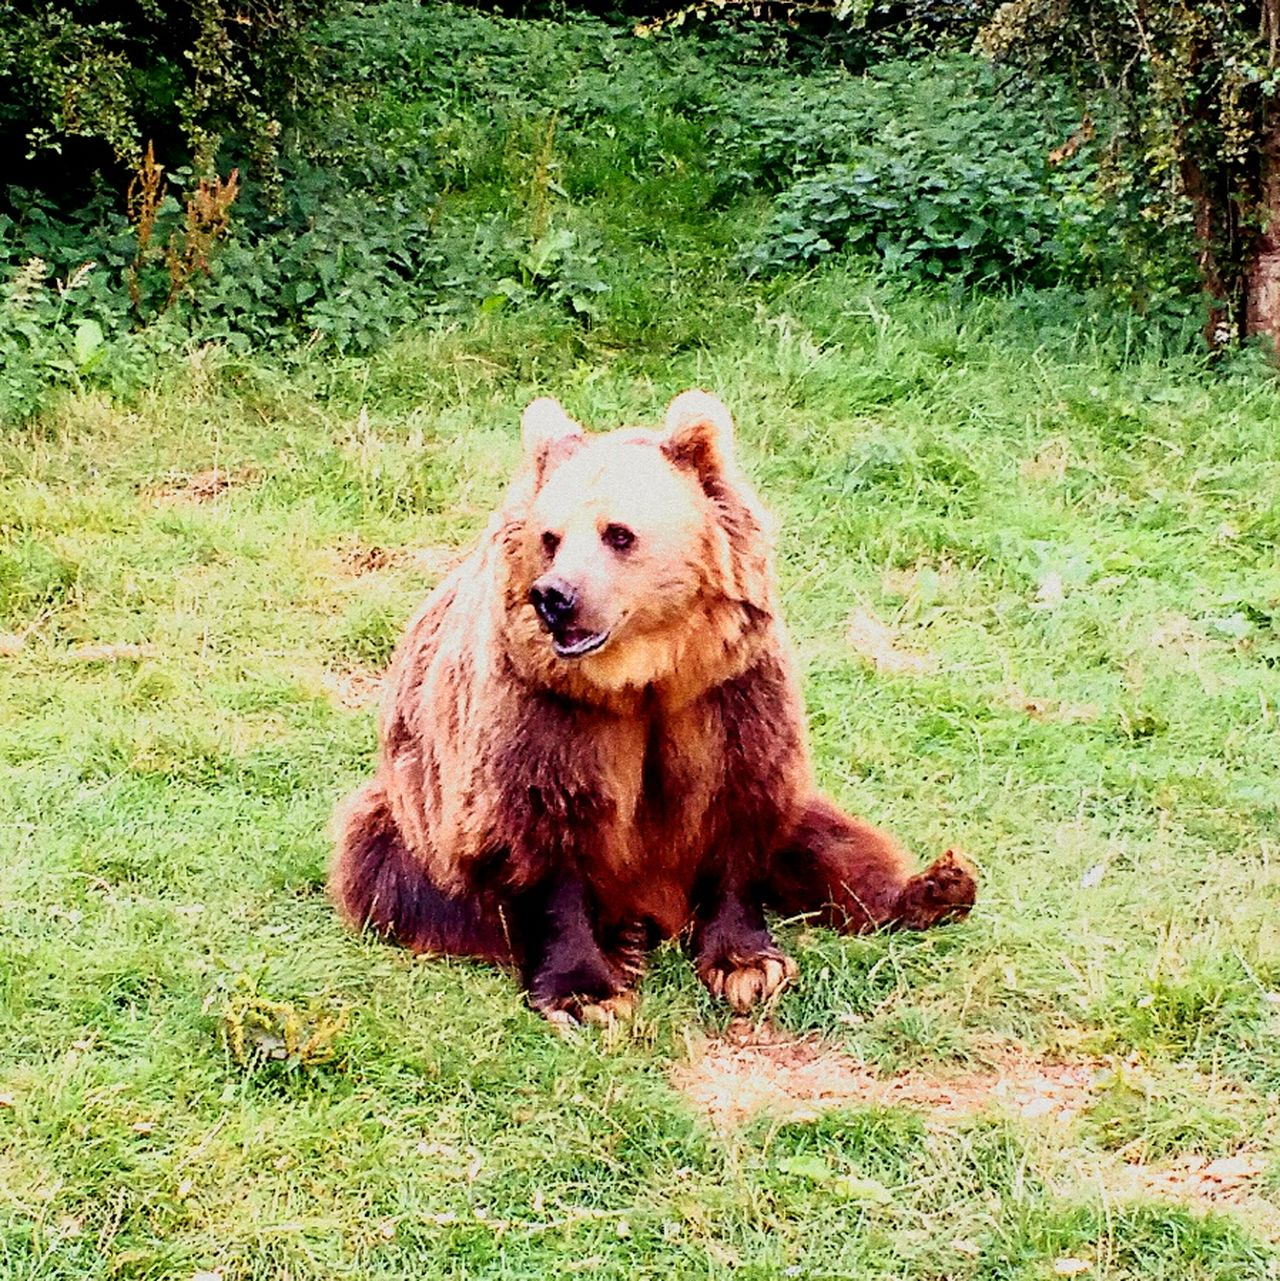 Bear Brown Bear Wildanimal Wild Animal Wild Animals Up Close Bears Galore Bears Lovers Animal Animals In The Wild Wild Animal Photography Animal_collection Animal Wildlife Animal Portrait Wild Animals Close Up Bears Animal Photography